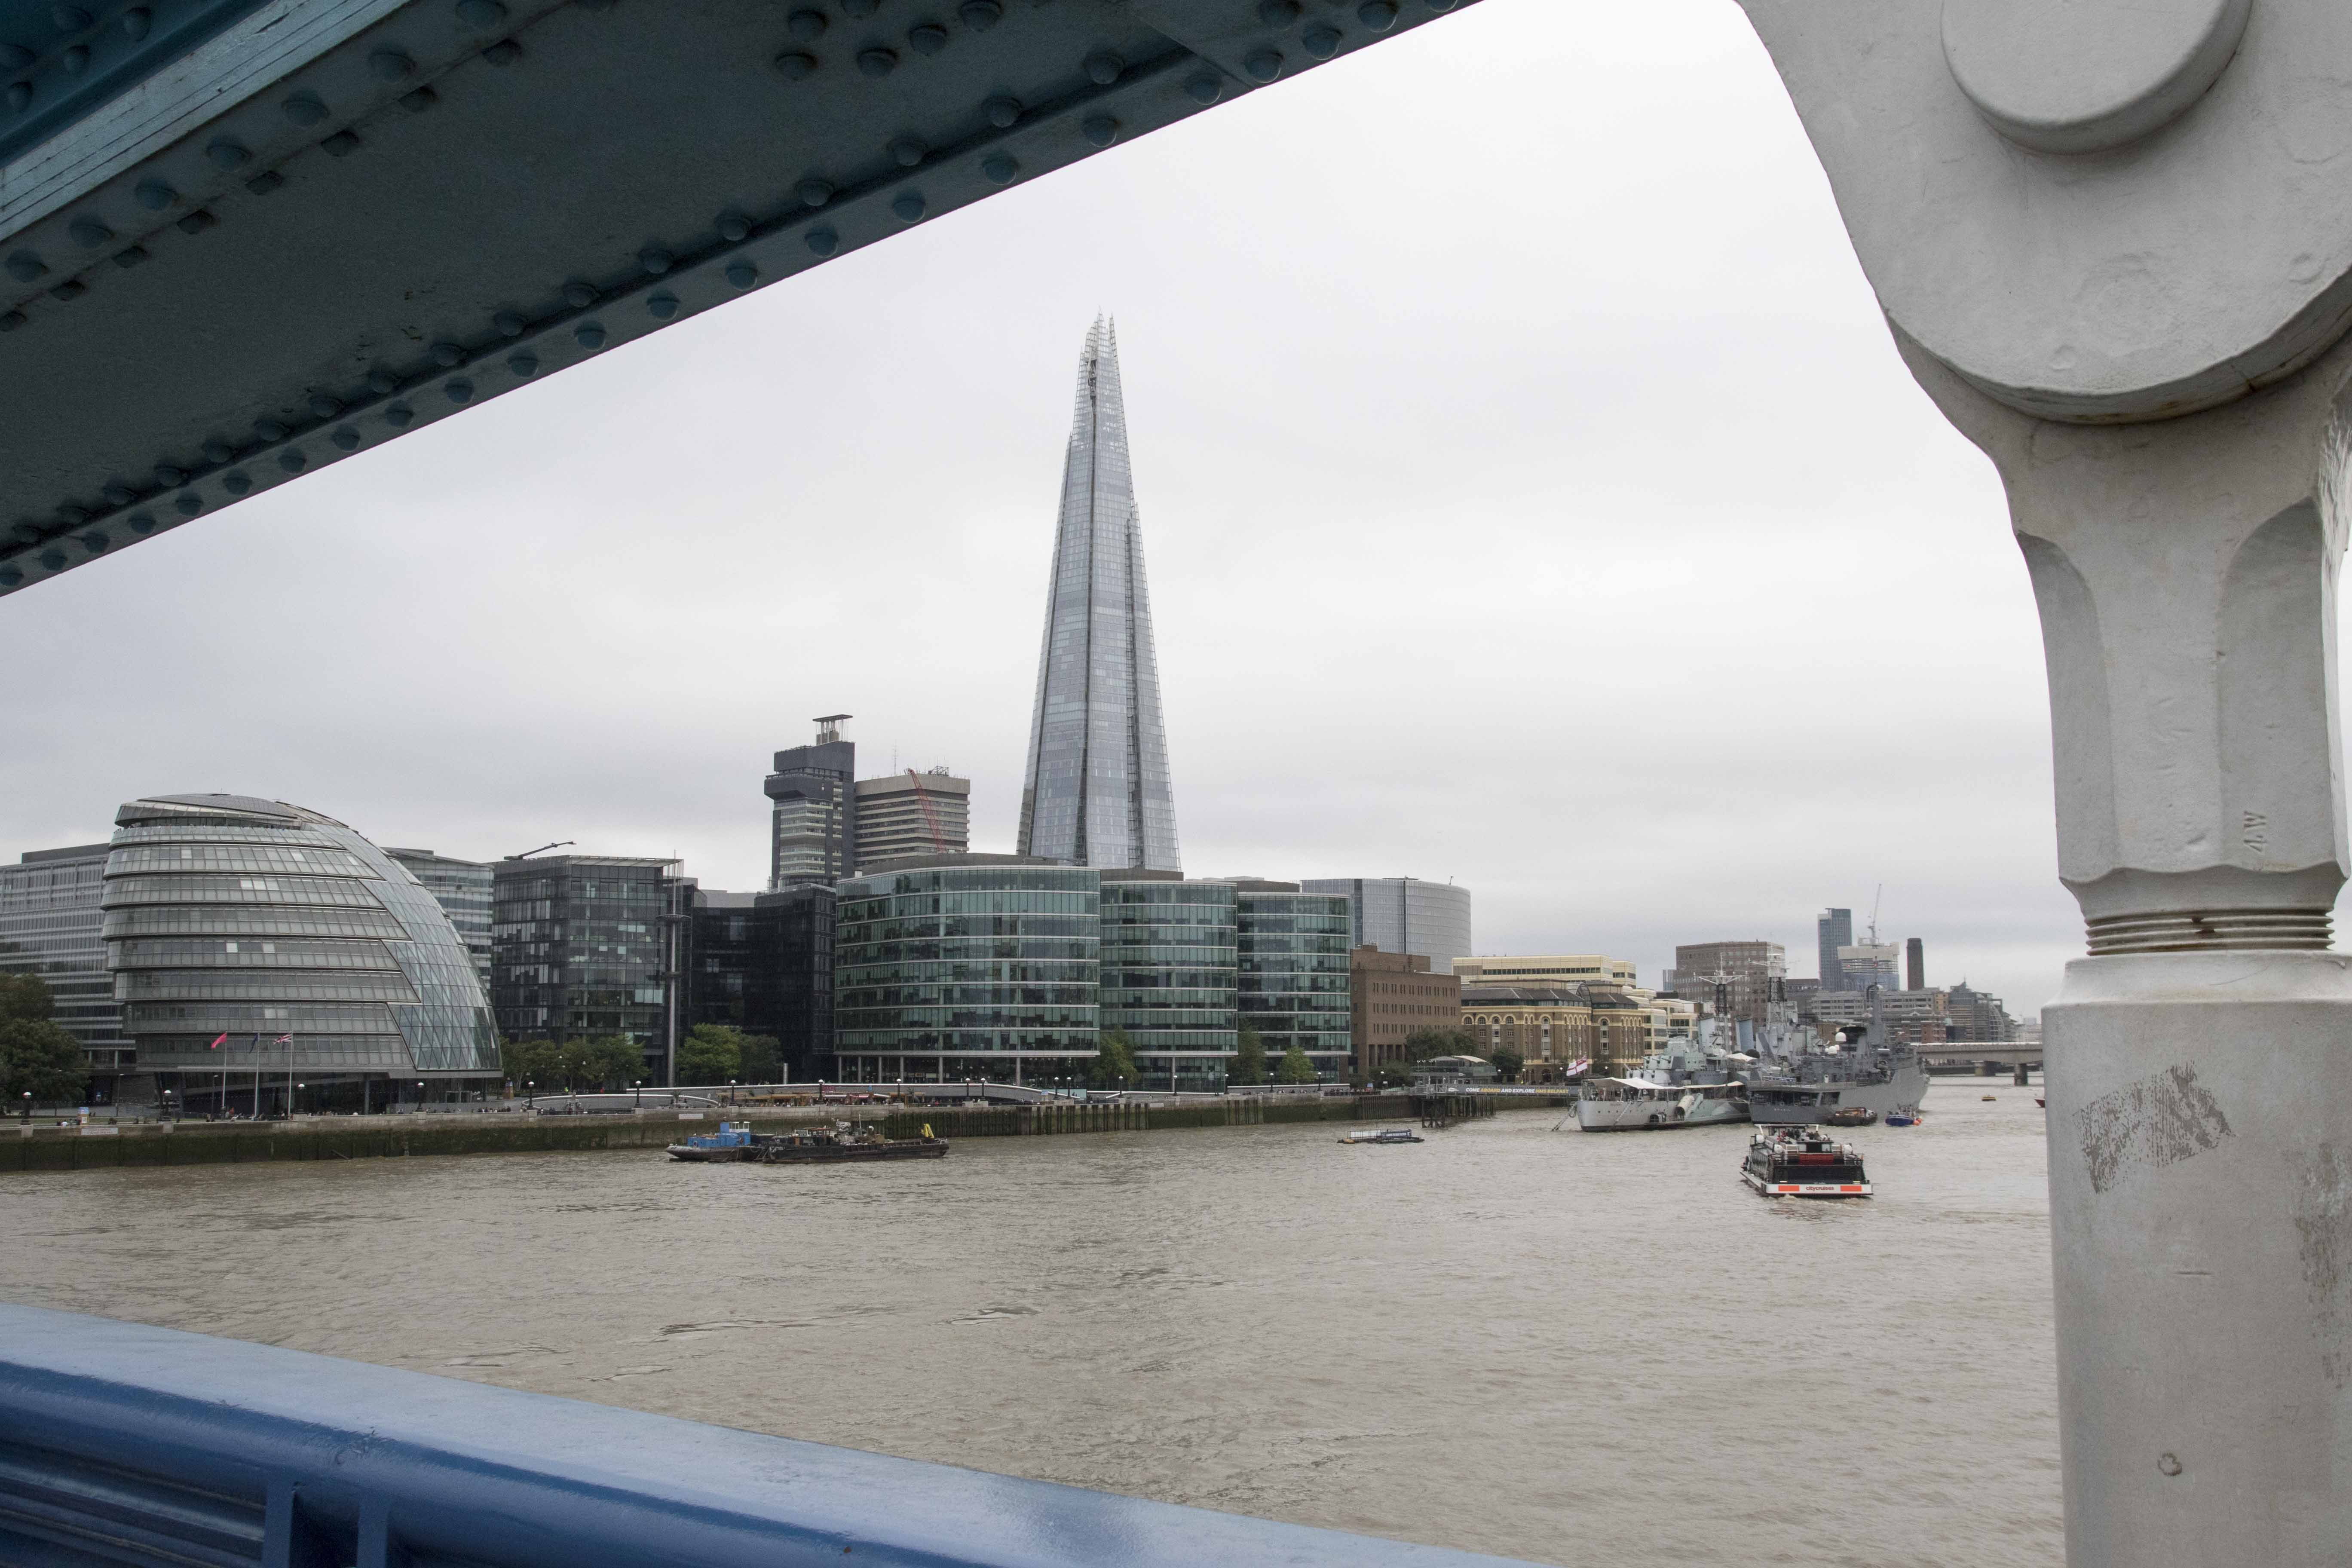 Views of the Shard from Tower Bridge